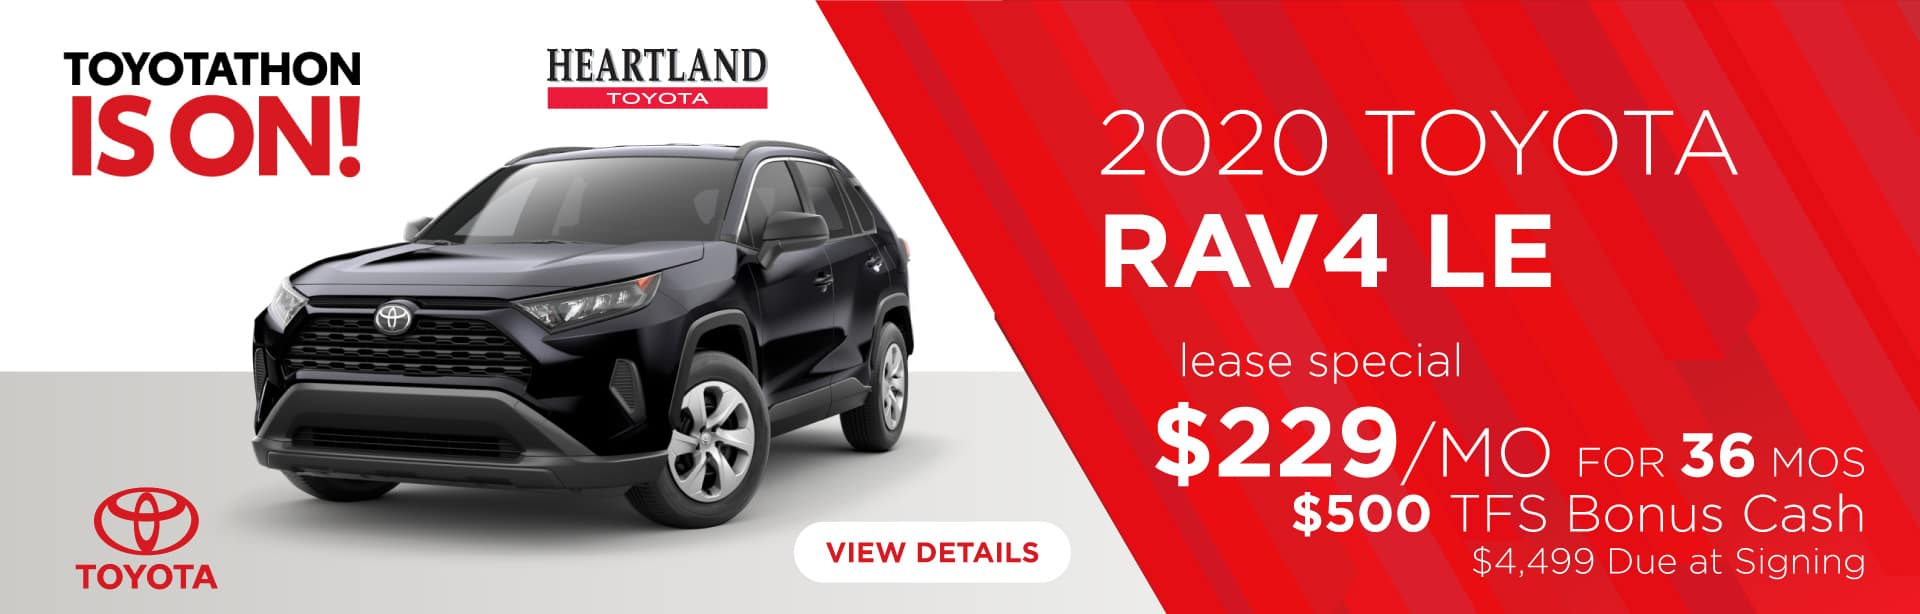 2020 Toyota RAV4 LE (featured vehicle)  $229/mo for 36 months* TFS Bonus Cash: $500 $4,499 Due at Signing    *Offer valid on 2020 Toyota RAV4 LE. $229 per month for 36 months. TFS Bonus Cash: $500. Lease with $4,499 due at signing; includes a $695 acquisition fee. Valid on VIN: 2T3G1RFV8LW089786, 2T3G1RFV5LC062630, 2T3G1RFV0LC069193. MSRP $29,050. Lease is through TFS. Subject to credit approval. No Security deposit required. Excludes taxes, title, and fees. 36 monthly payments required. Not all lessees will qualify for lowest payment through participating lender. Residency restrictions apply. Lessee responsible for mileage over 10,000 miles per year at $0.15/mile per year. Option to purchase at lease end. A negotiable dealer documentary service fee of up to $150 may be added to the sale price or capitalized cost. Offer expires 1/2/2020.